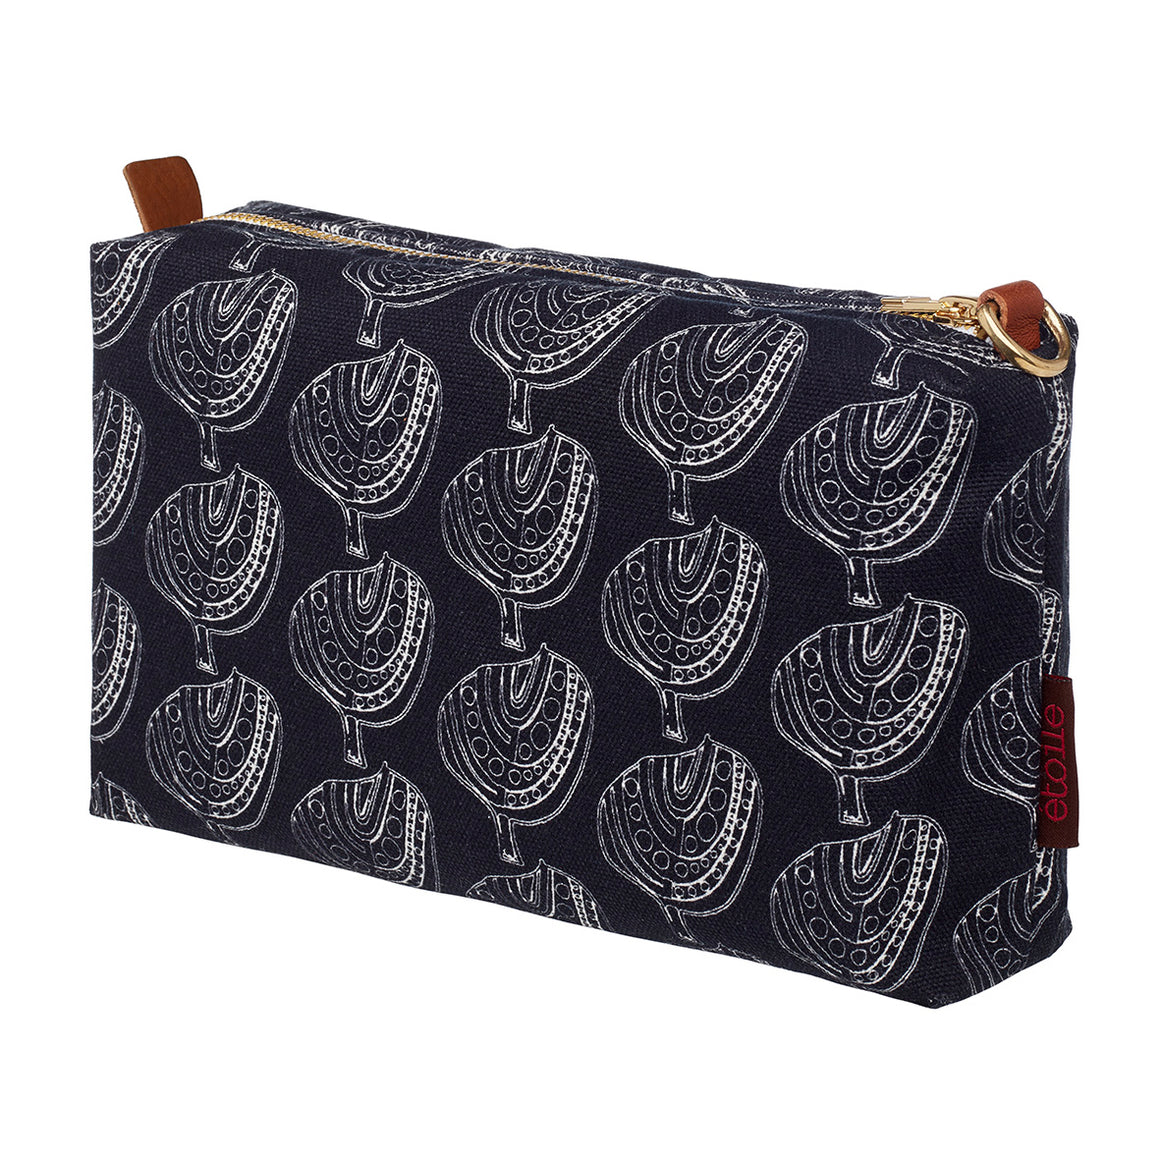 Graphic Apple Tree Pattern Printed Cotton Canvas Toiletry, cosmetic and Travel Bag in Black & White in Canada